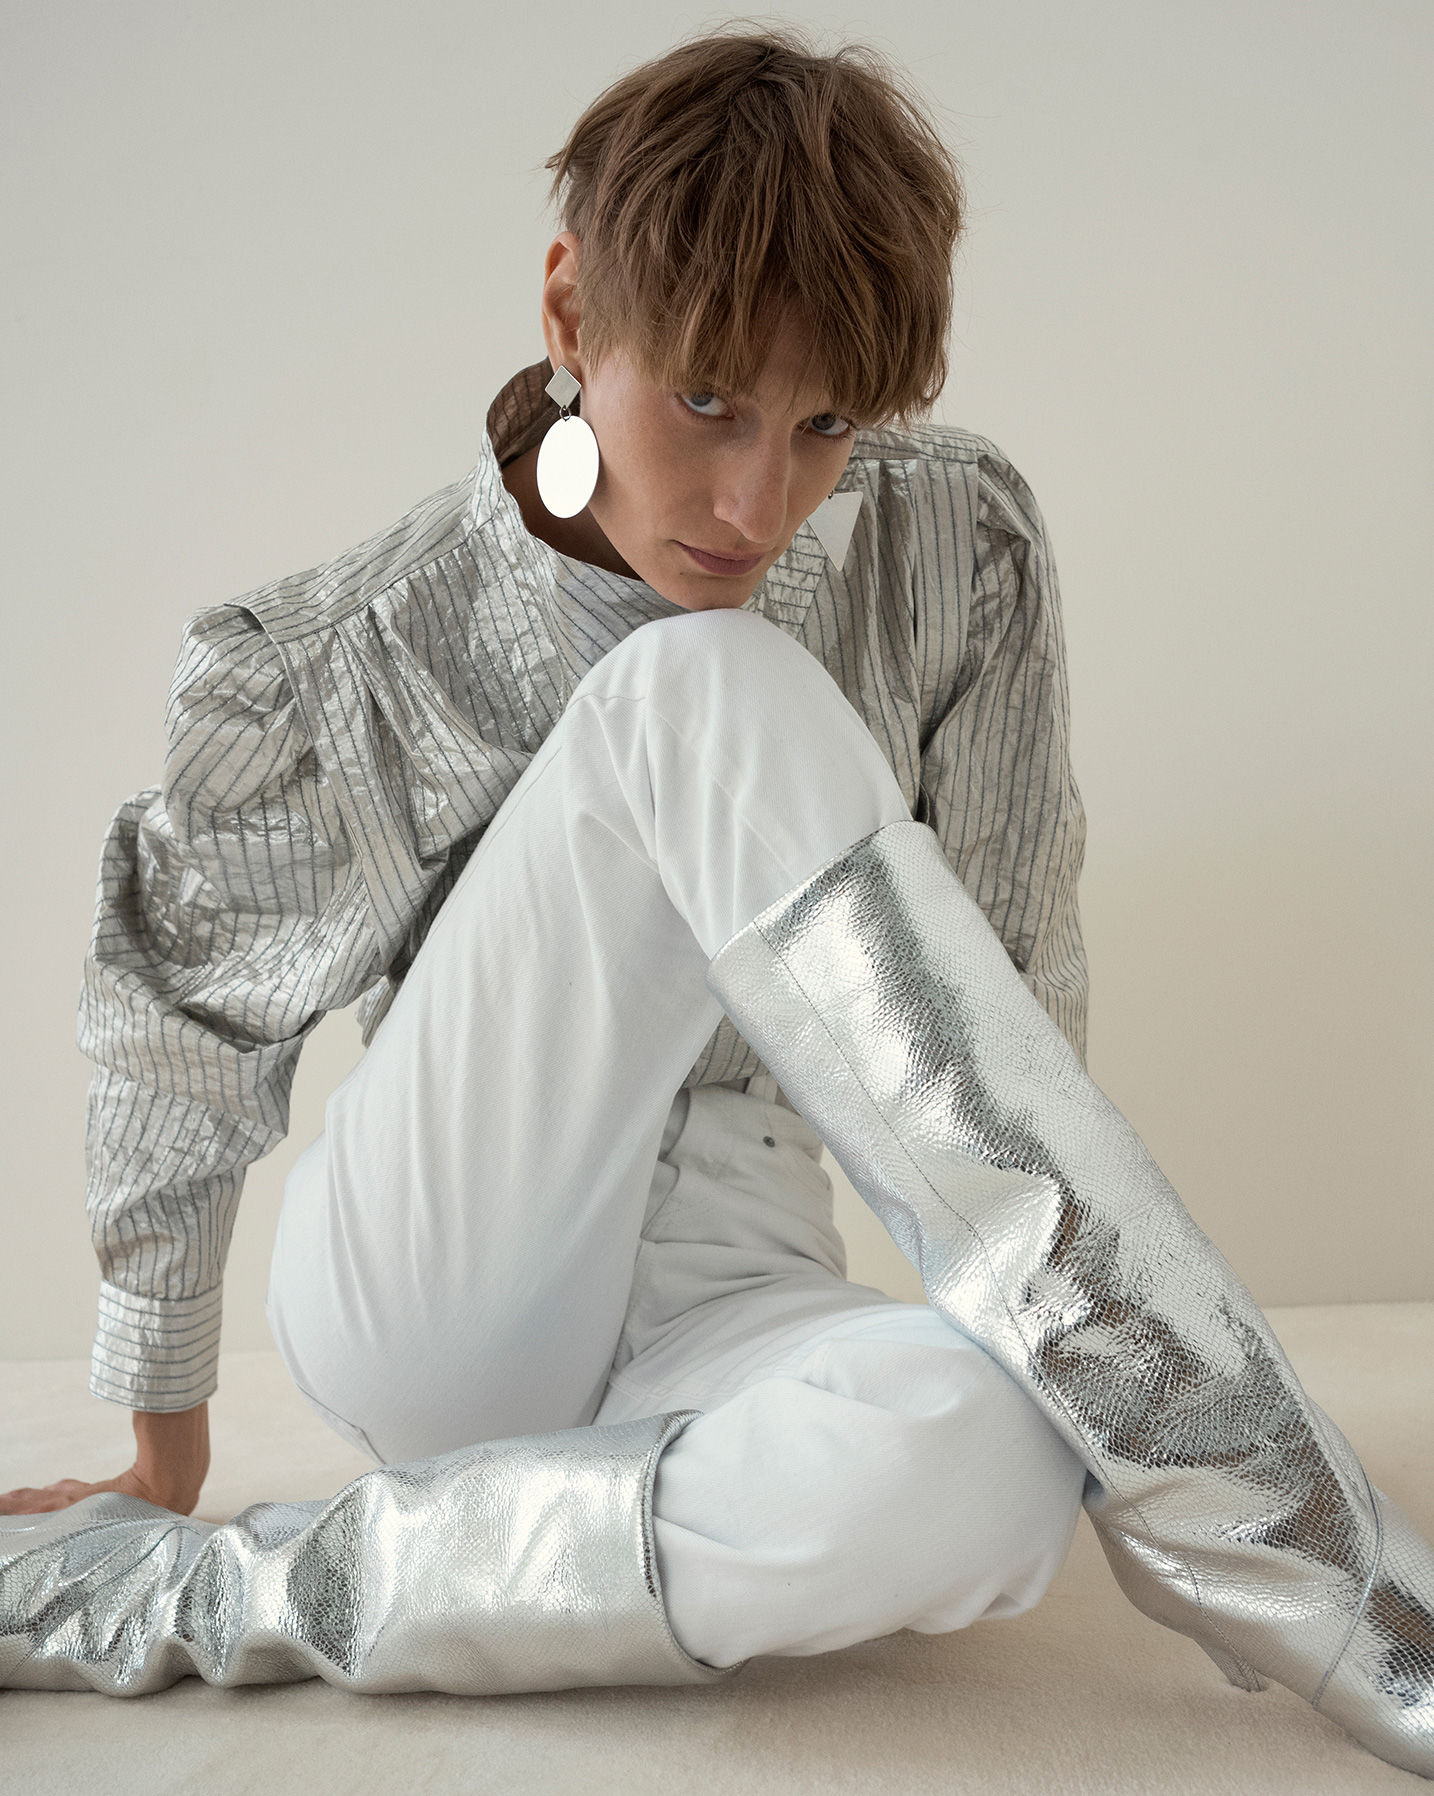 \'The model is sitting wearring the Romane top, Dominic trousers and Laomi boots.